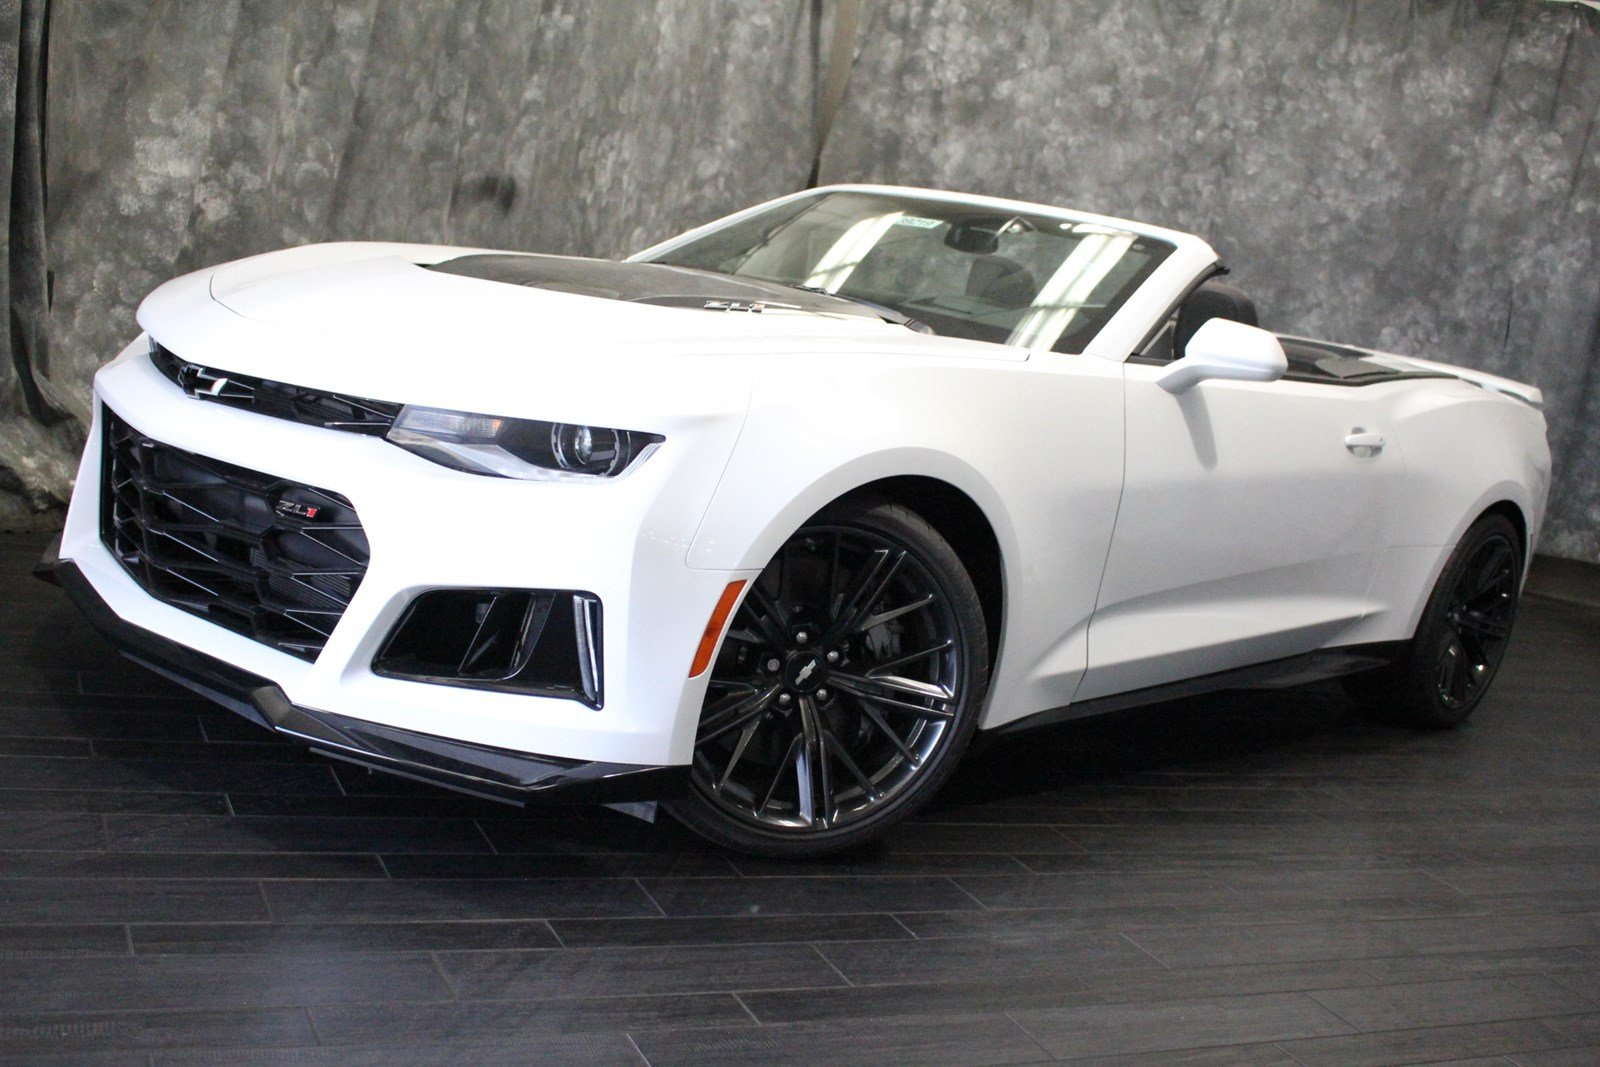 new 2018 chevrolet camaro zl1 convertible in villa park #39219